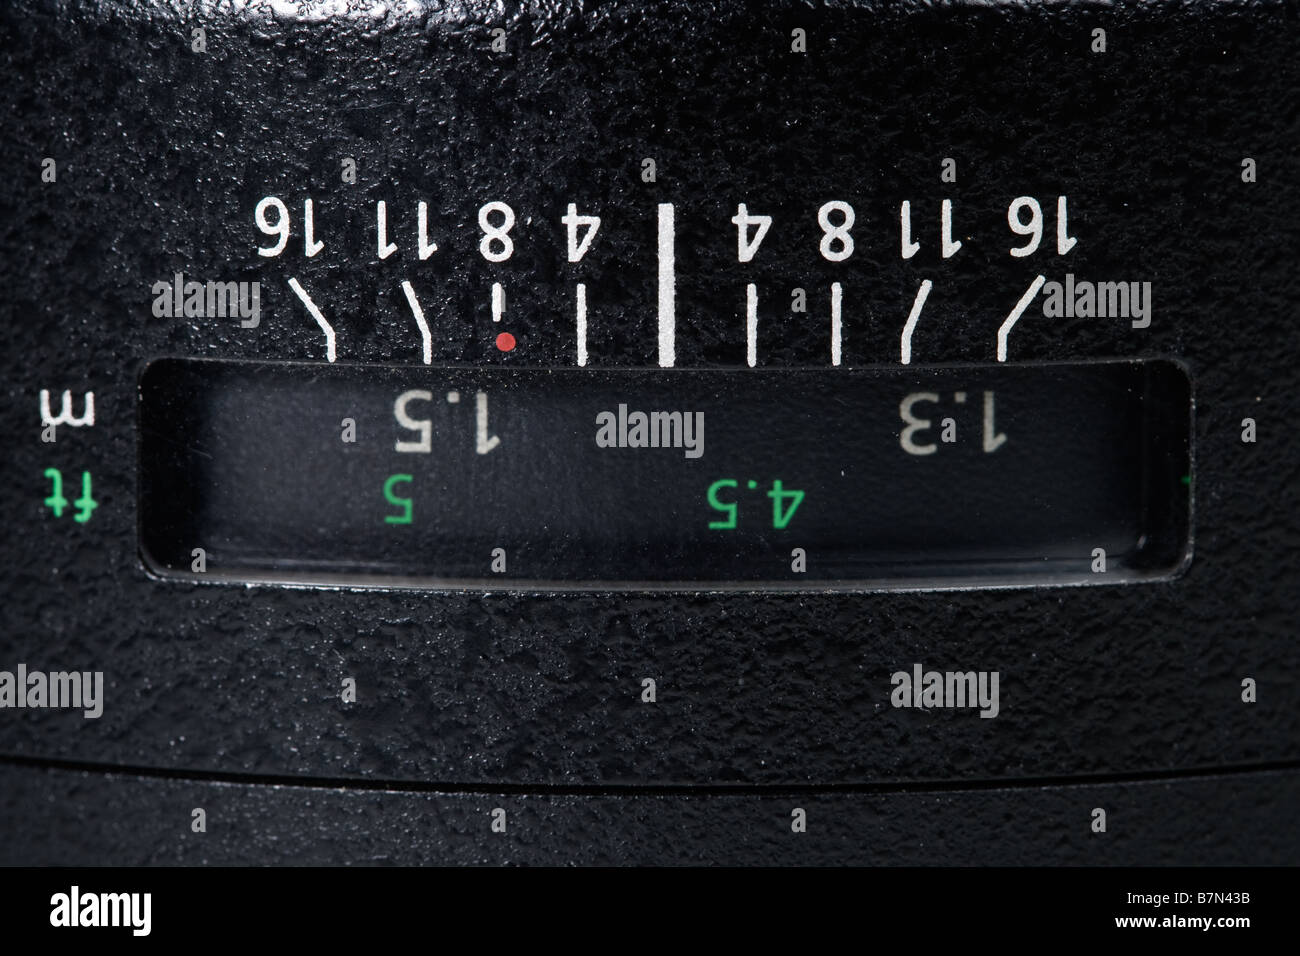 DOF and distance scale on camera lens - Stock Image